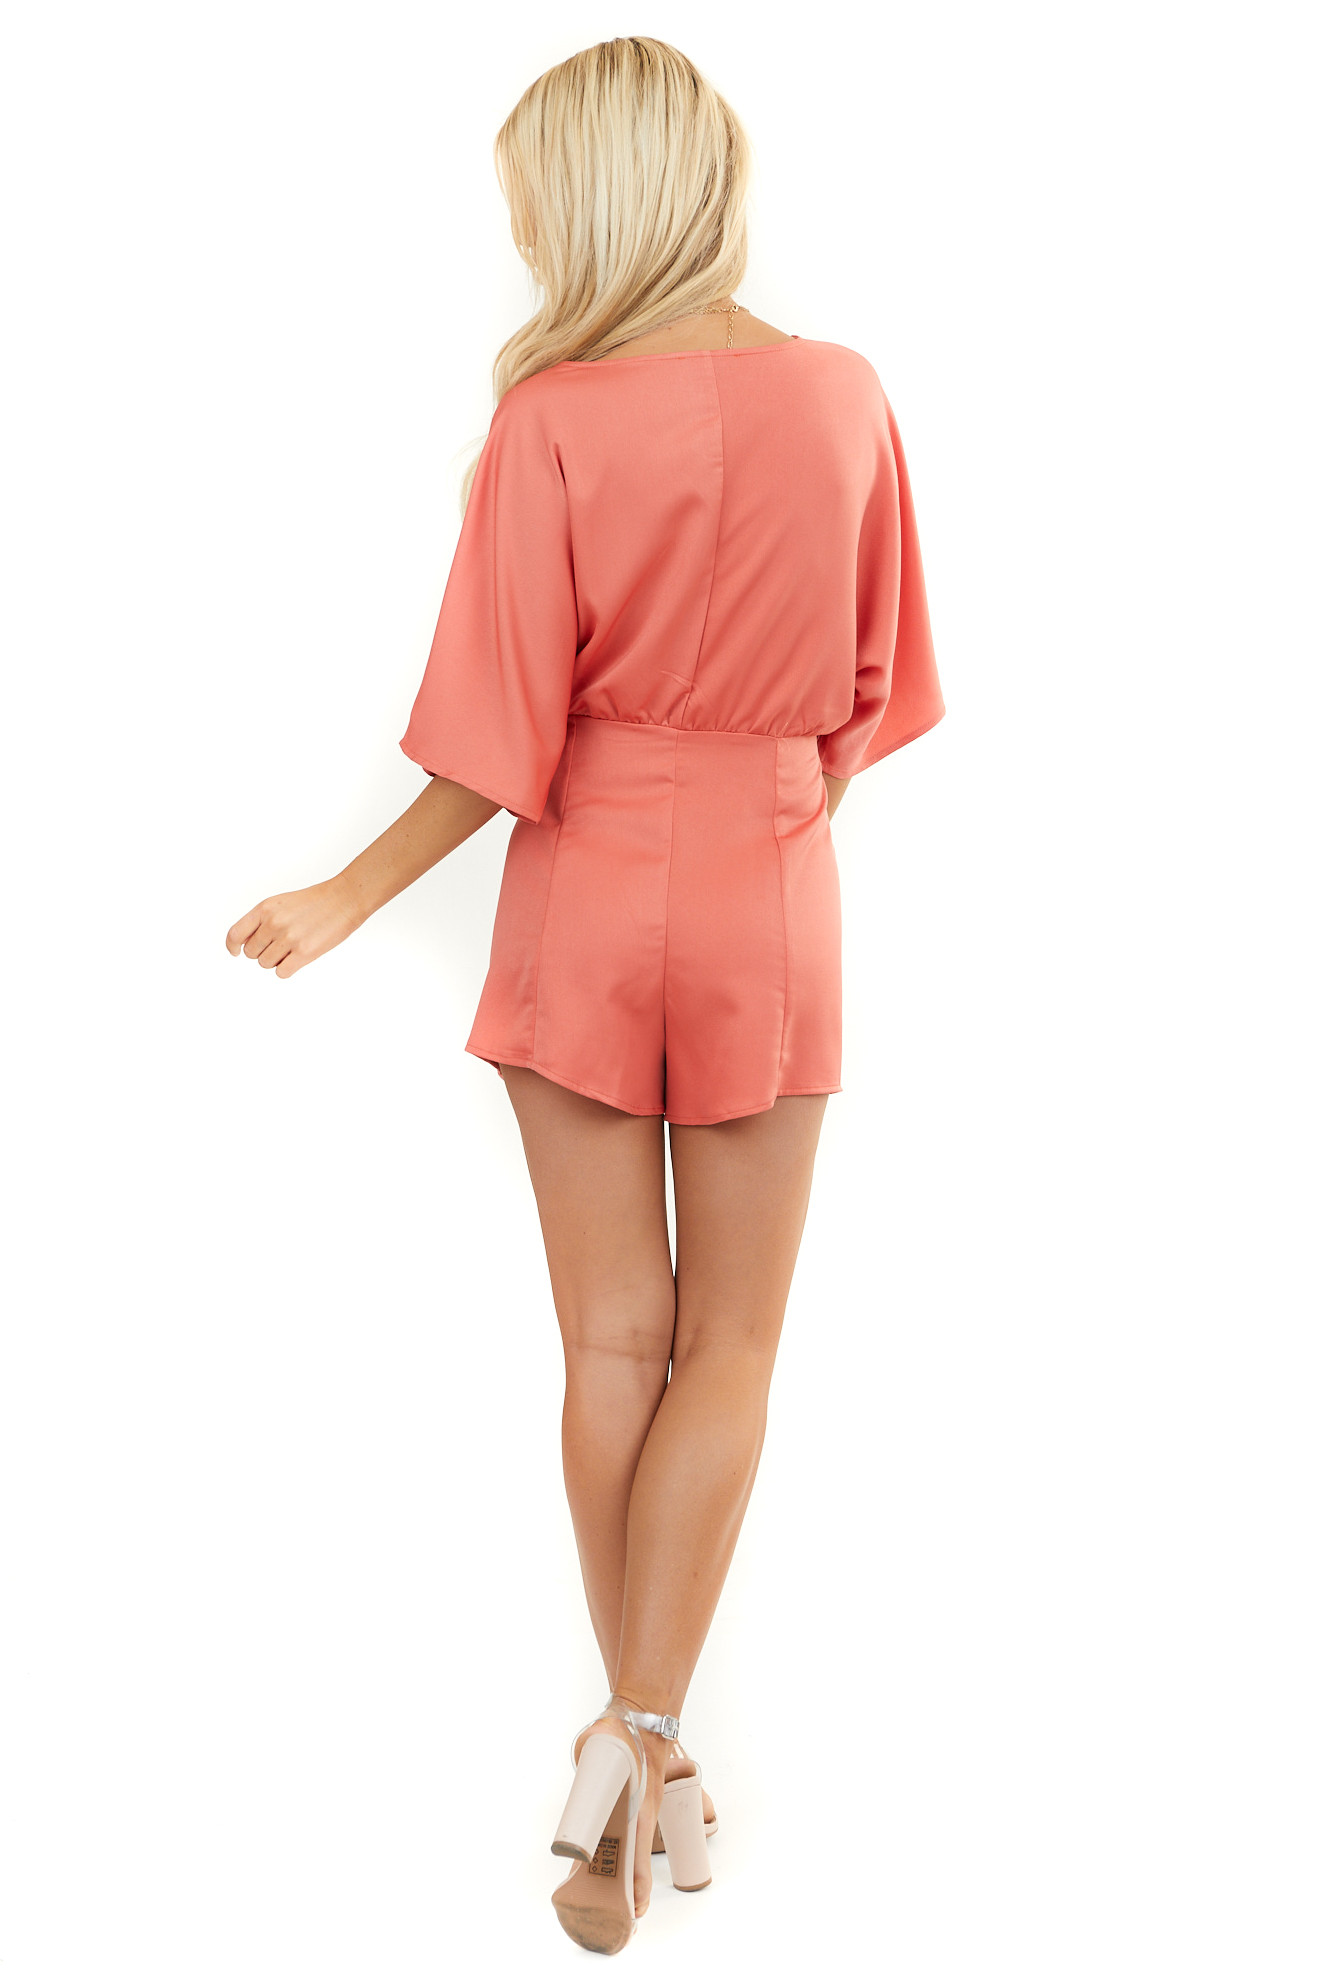 Brick Red Short Sleeve Woven Surplice Romper